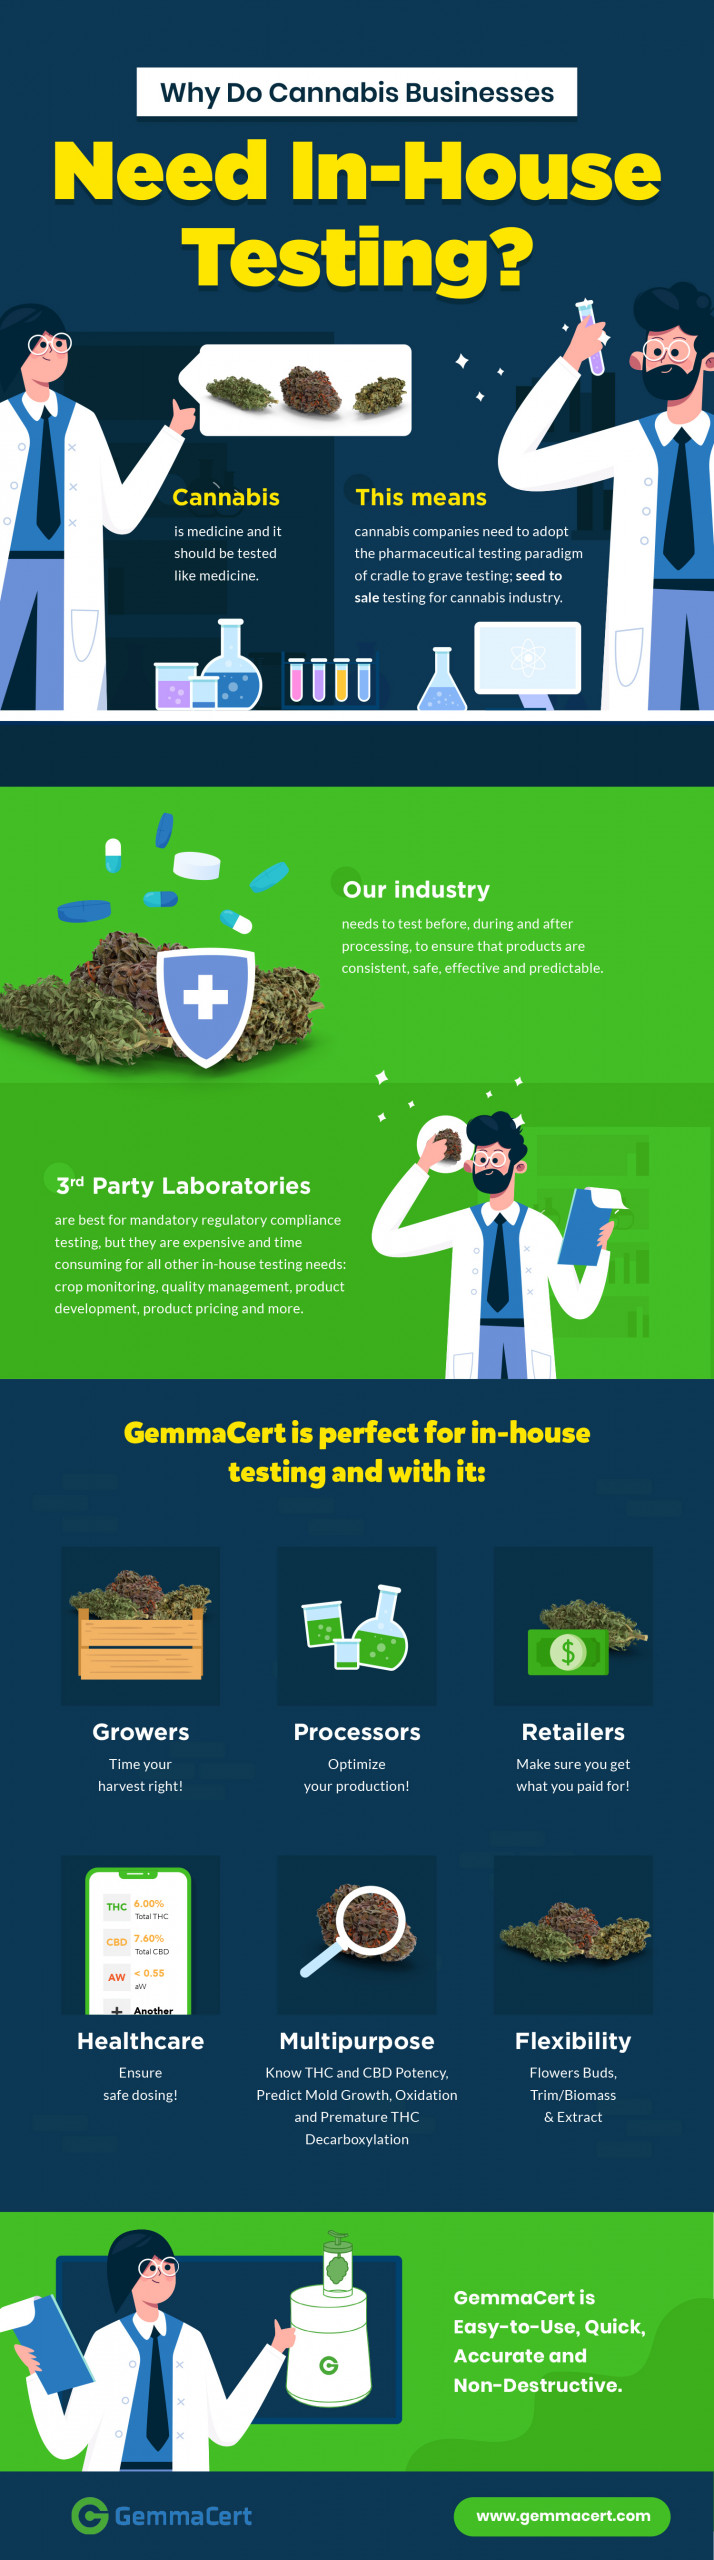 Why do Cannabis Businesses need in-house testing? Infographic